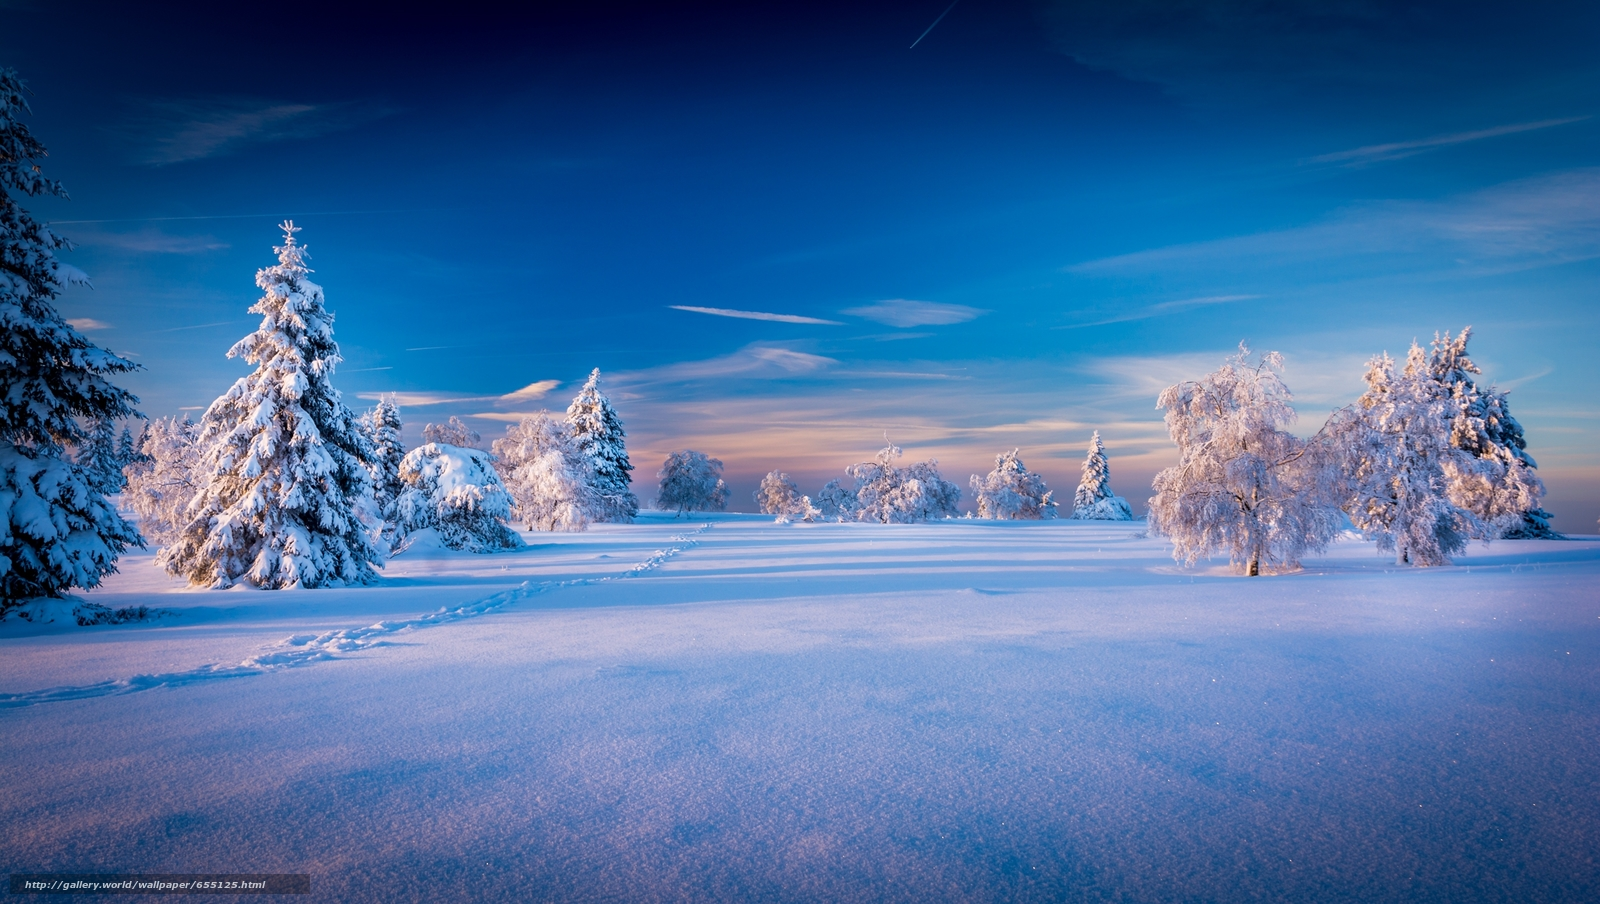 Download wallpaper winter,  snow,  drifts,  trees free desktop wallpaper in the resolution 2500x1412 — picture №655125